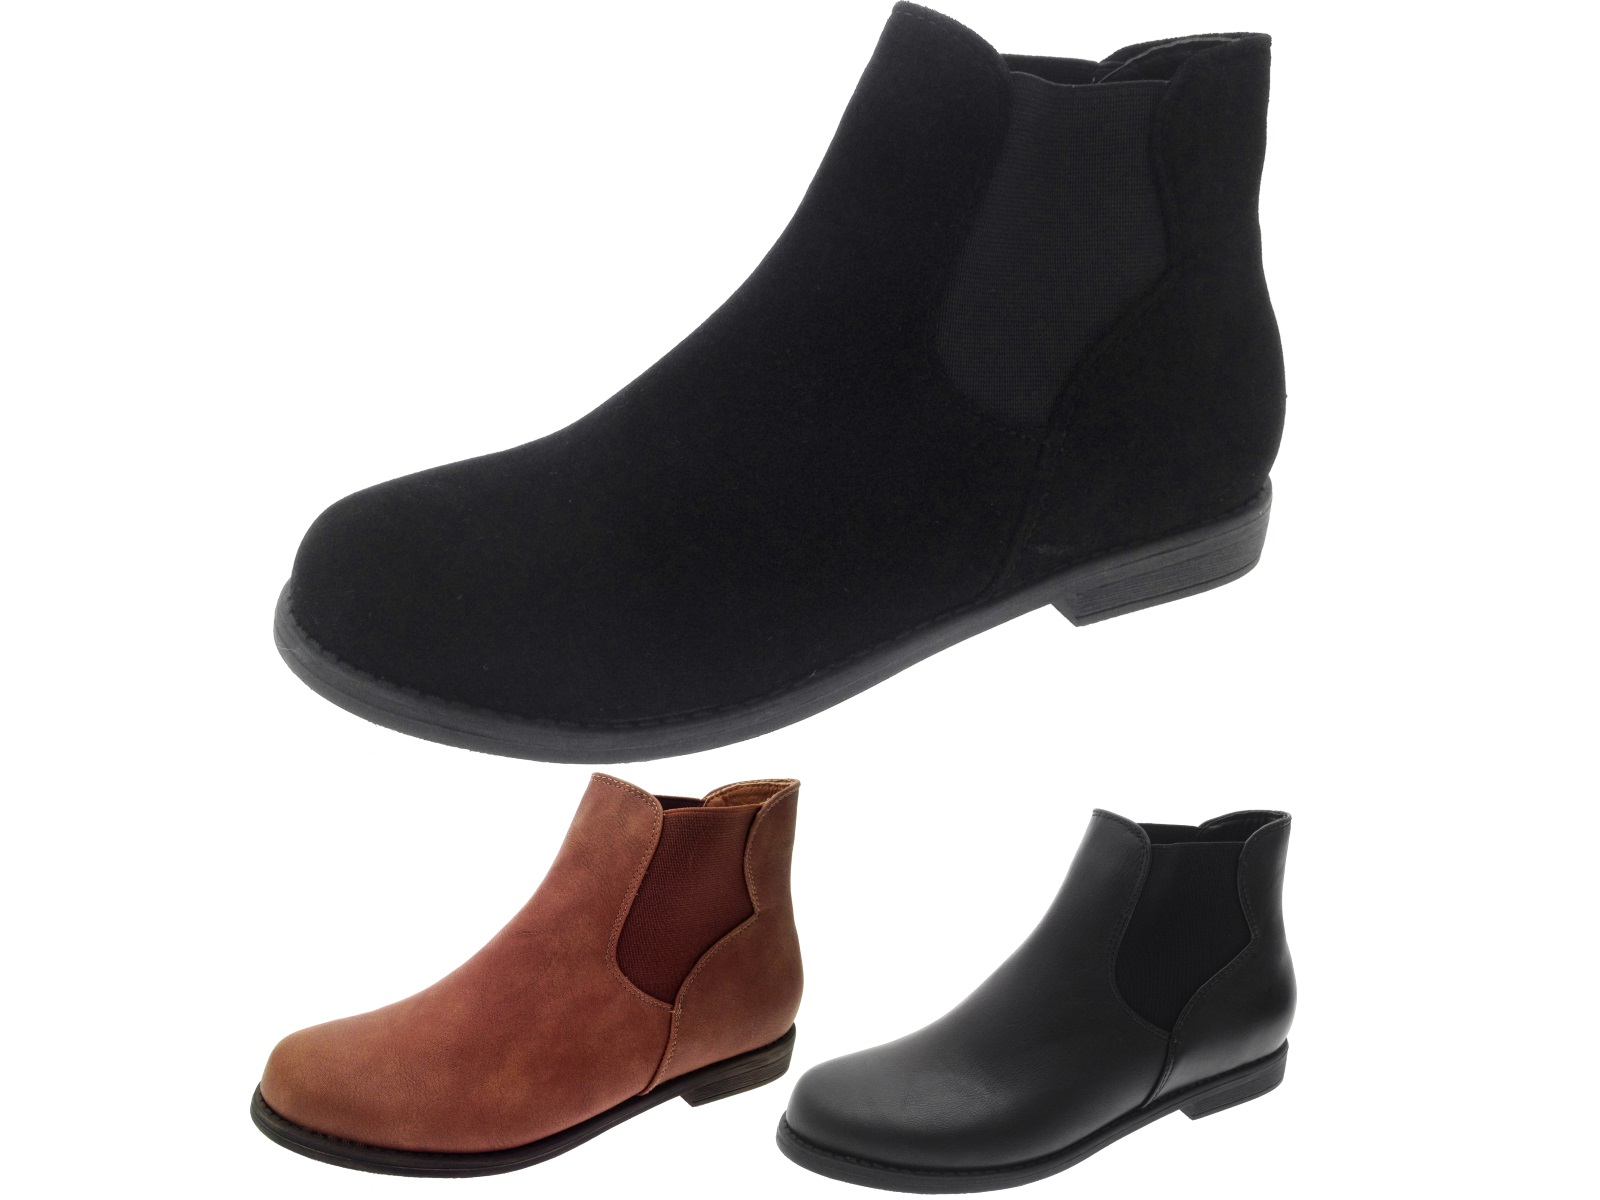 Shop women's ankle boots at Debenhams. Find your perfect pair from classic blacks to your go-to block heeled browns; also available in wide fit styles. Dark brown croc-effect block heel Chelsea boots Save. Was £ Now £ Mantaray Tan tassel block heel ankle boot Save.